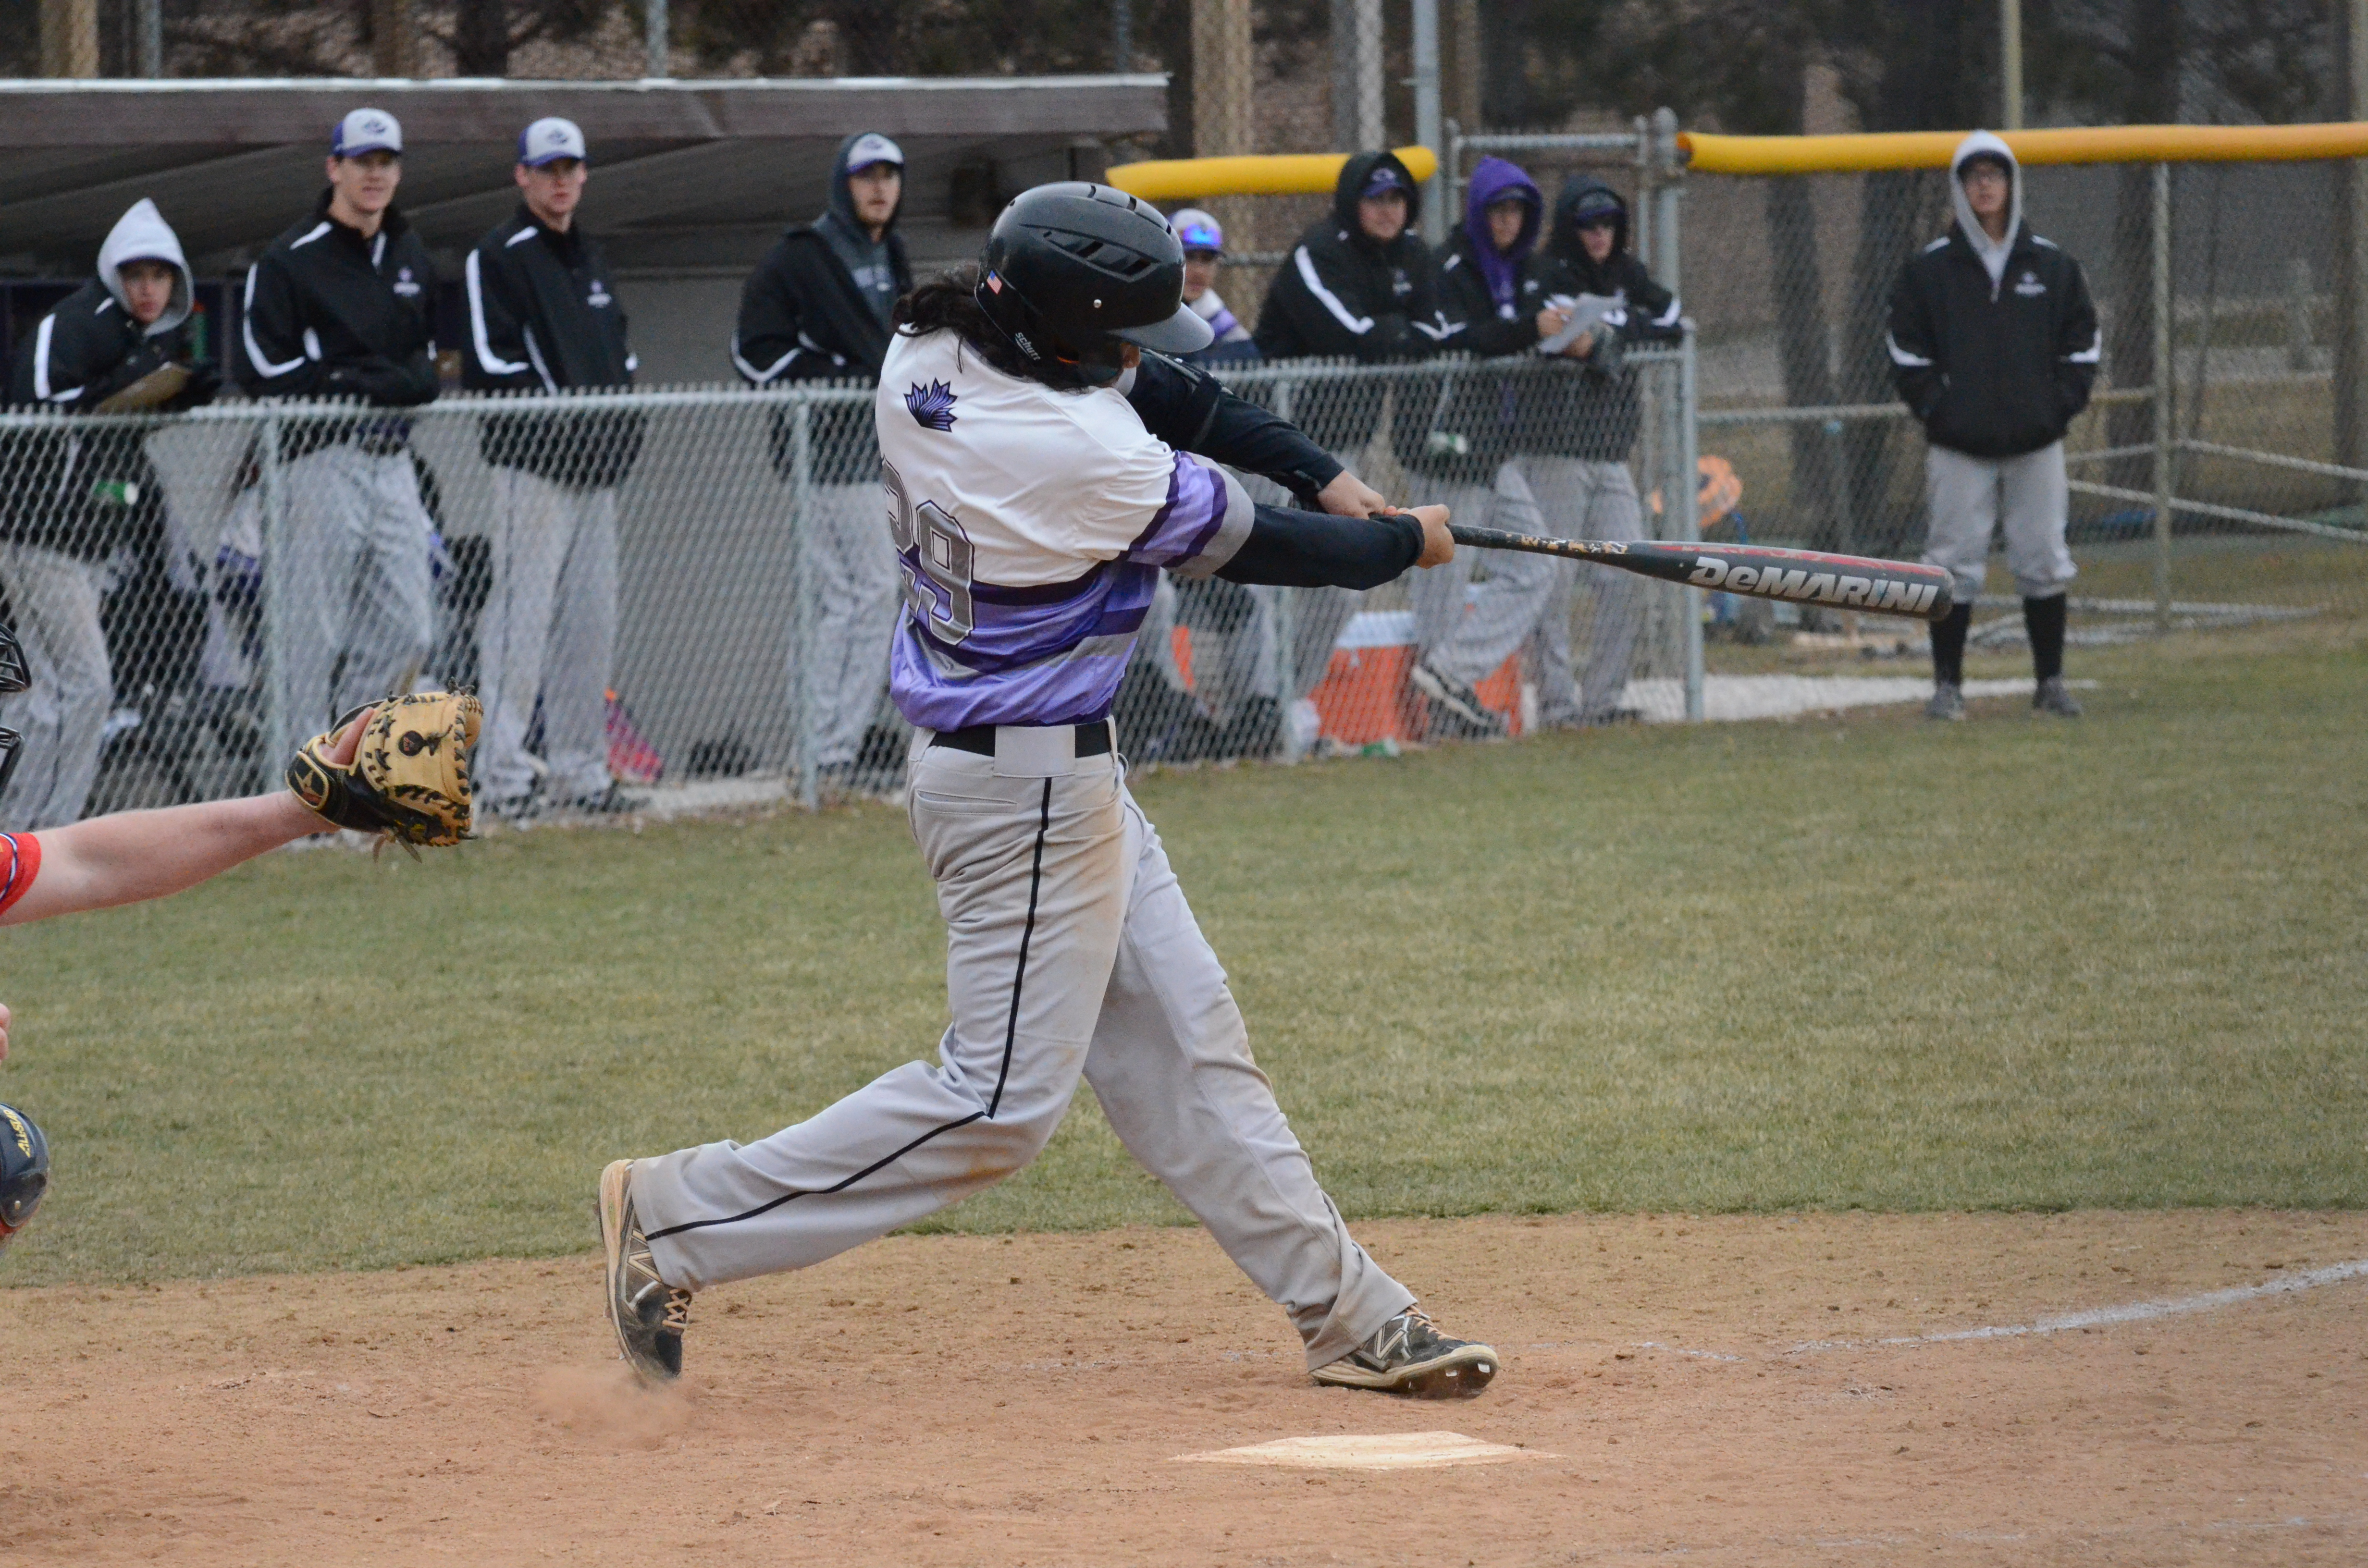 Cody McCoy swings at an incoming pitch